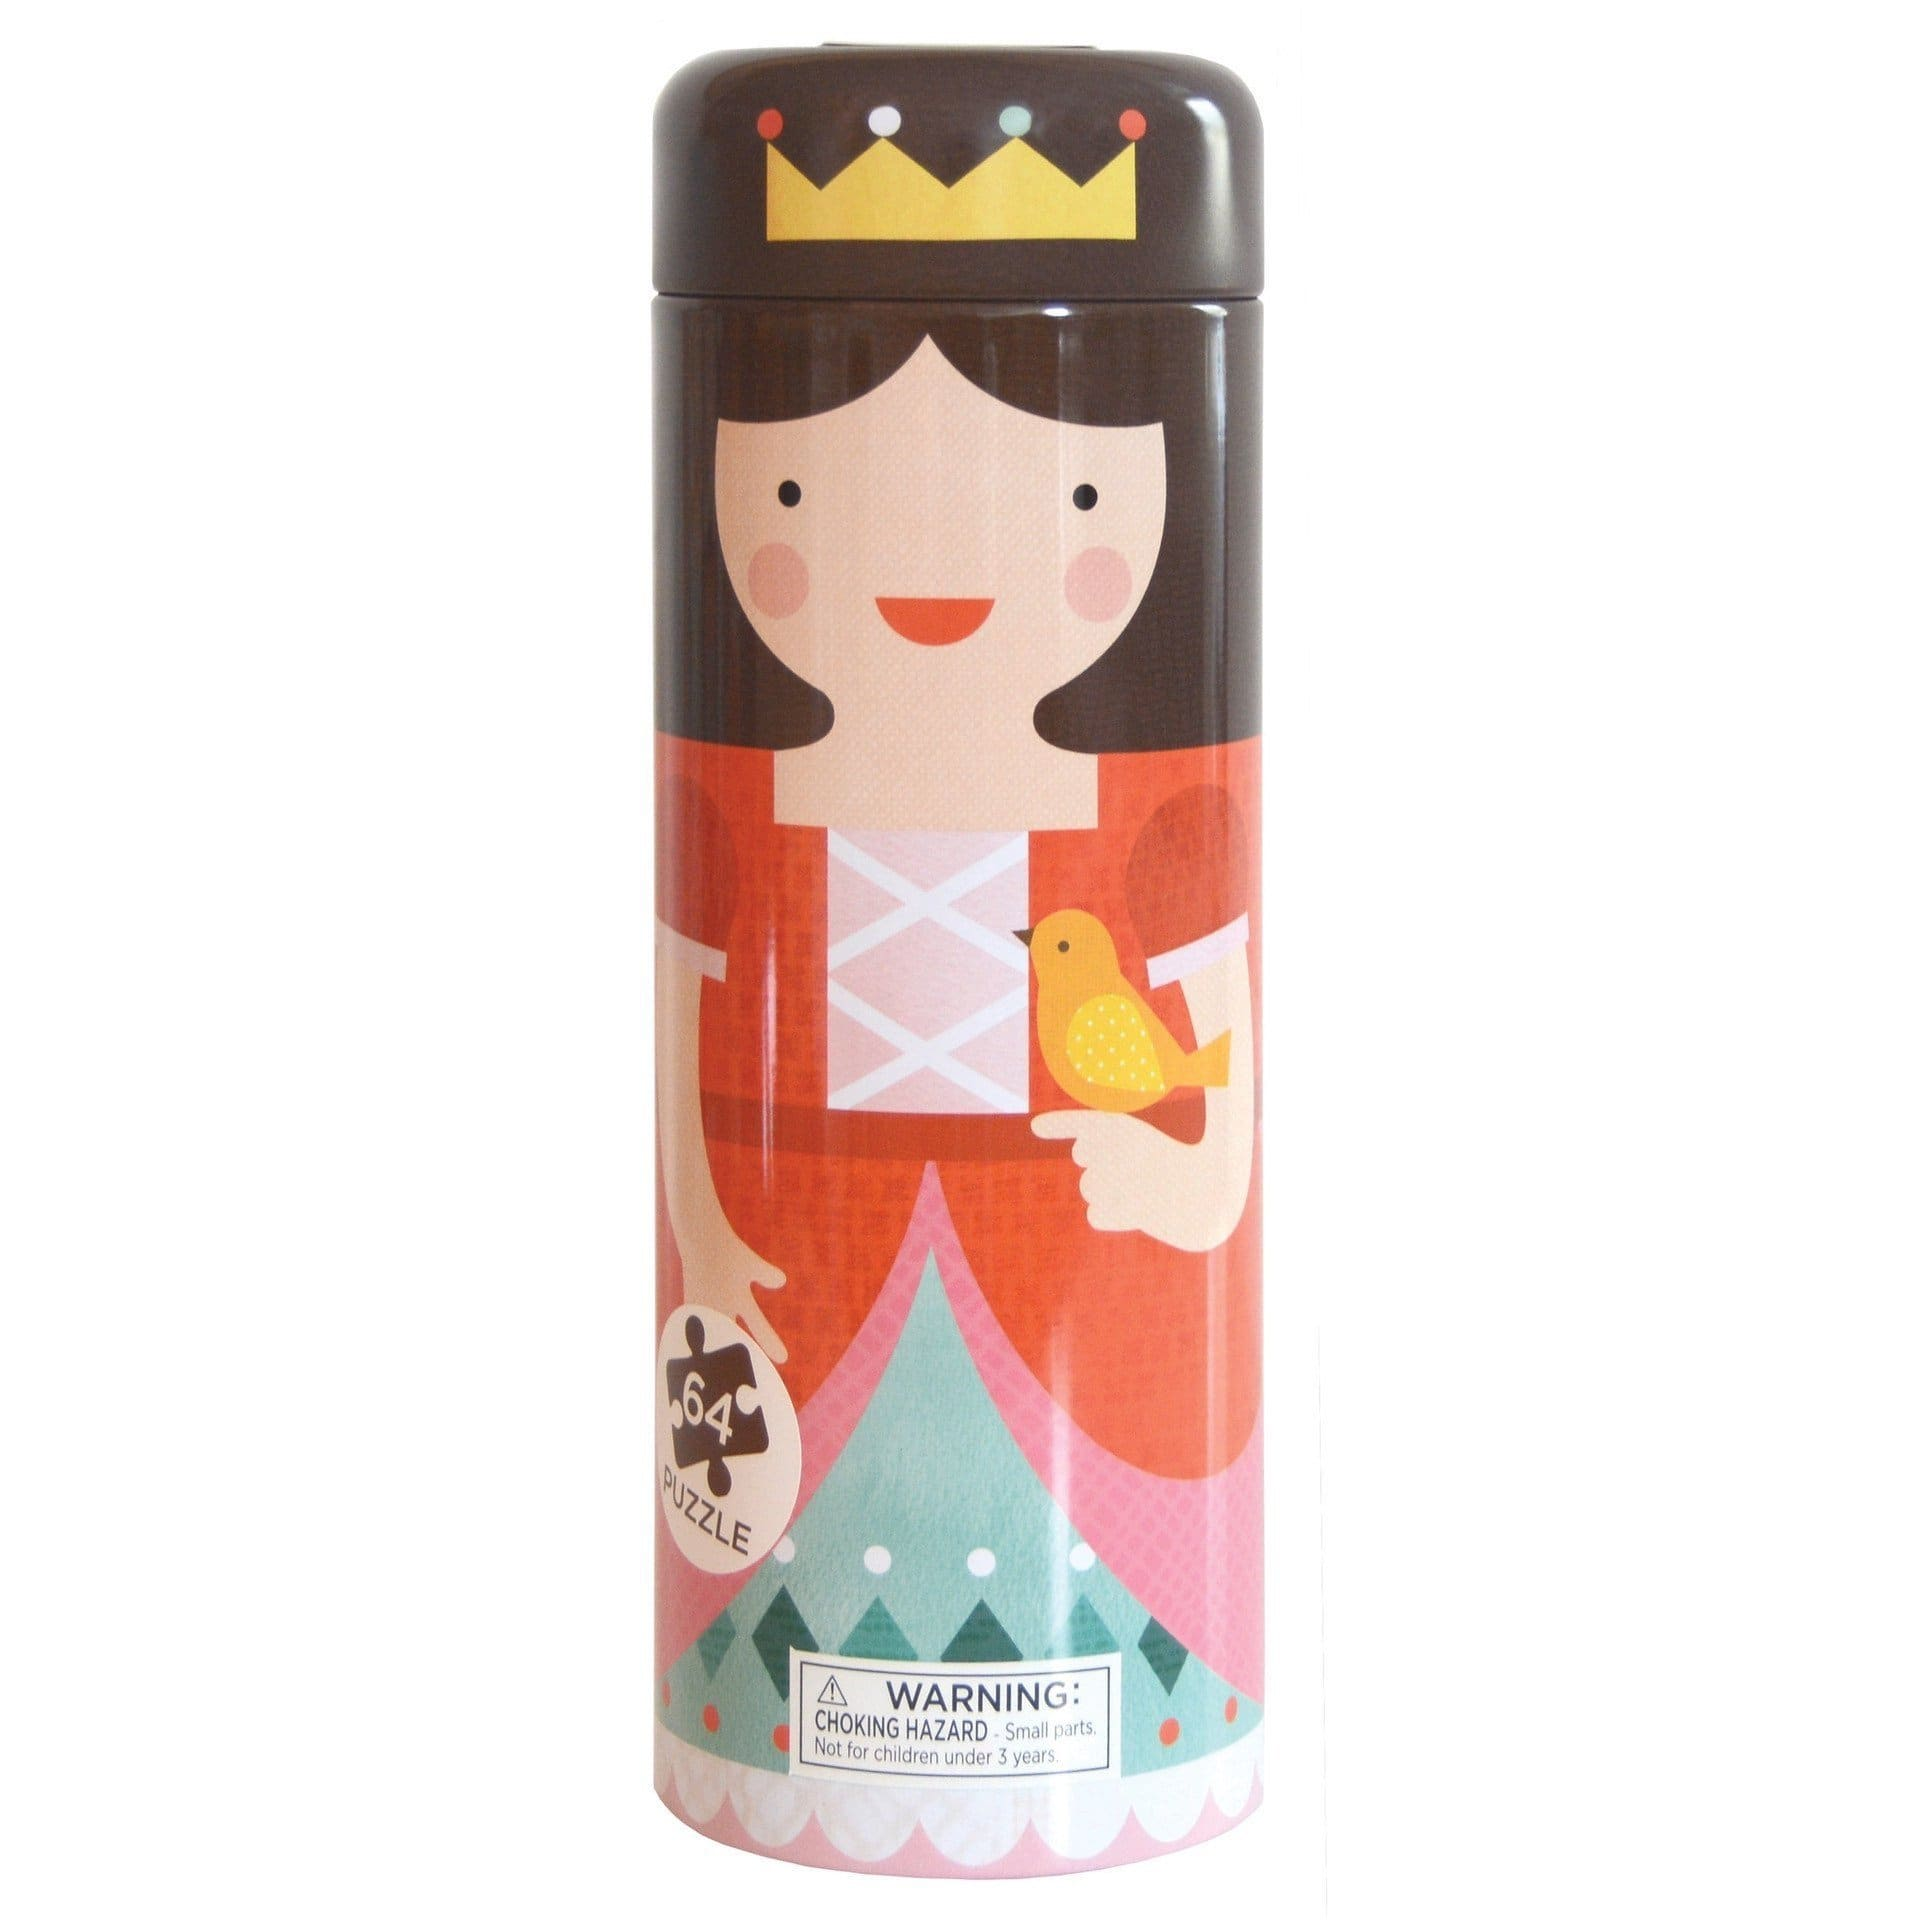 TIN CANISTER 64 PIECE ROYAL CASTLE PUZZLE